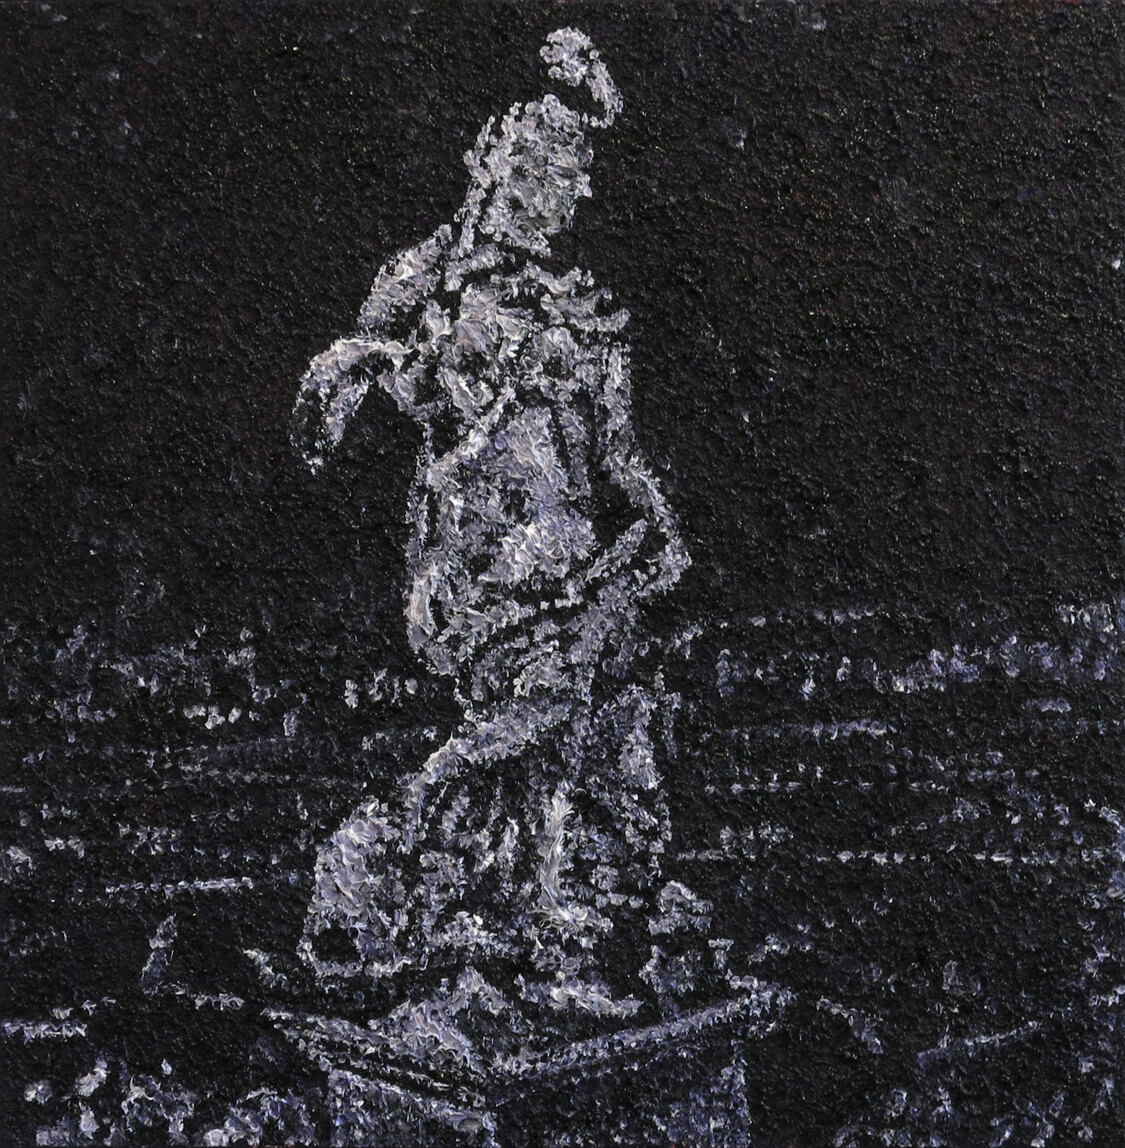 Statue I - Oil on Canvas, 60 x 60 cm, 2013